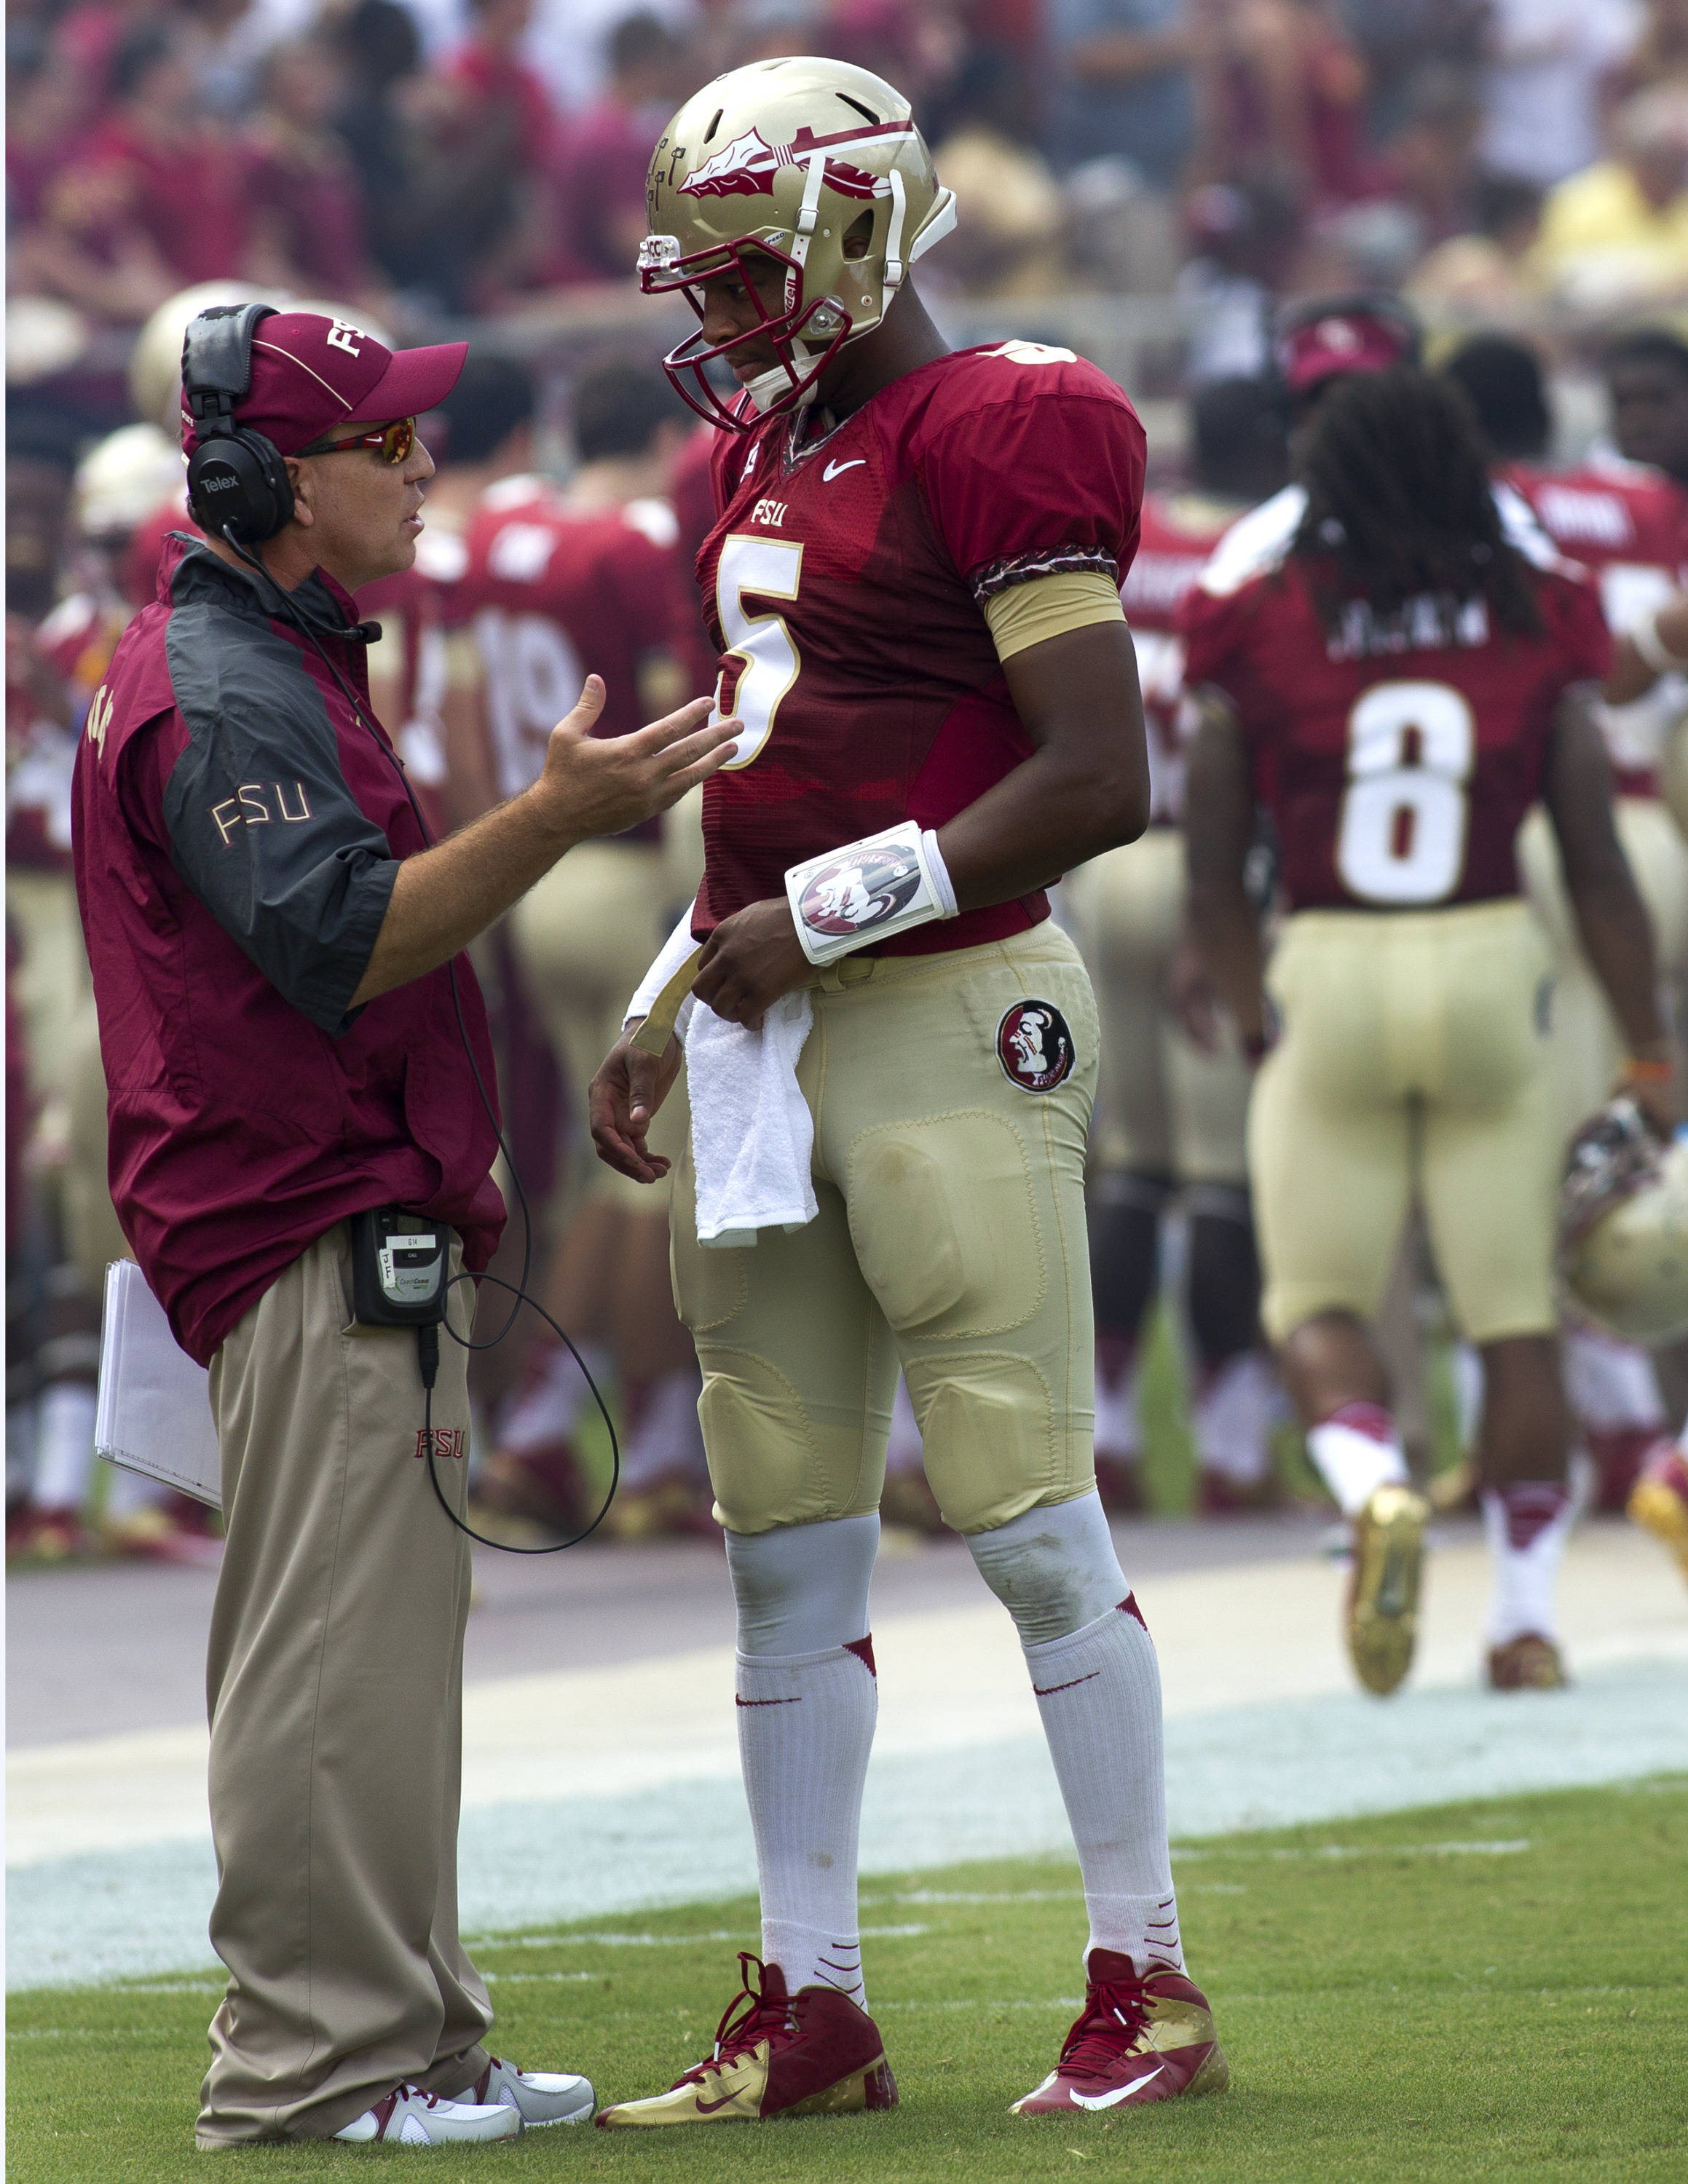 Head Coach Jimbo Fisher, Jameis Winston (5), FSU vs Nevada,  9-14-13, (Photo by Steve Musco)